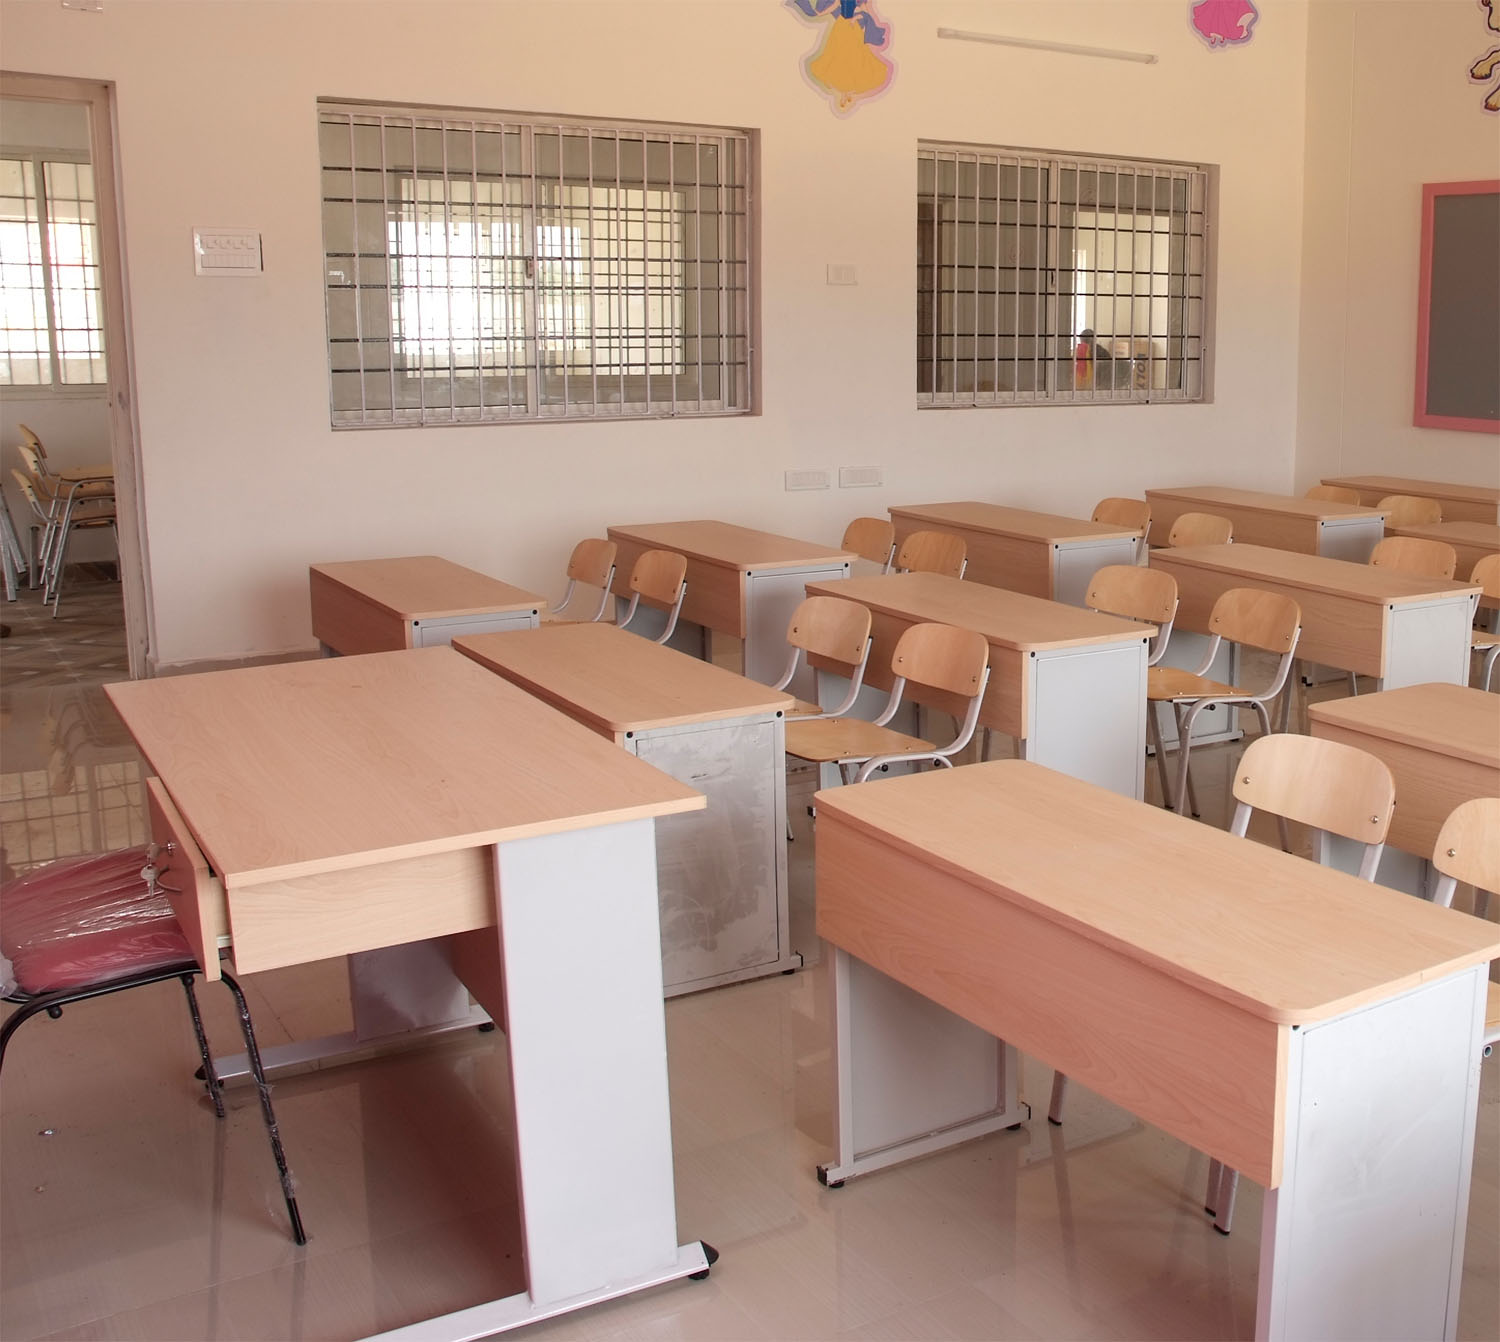 School Furniture Manufacturers And Suppliers Infodirectory B2b